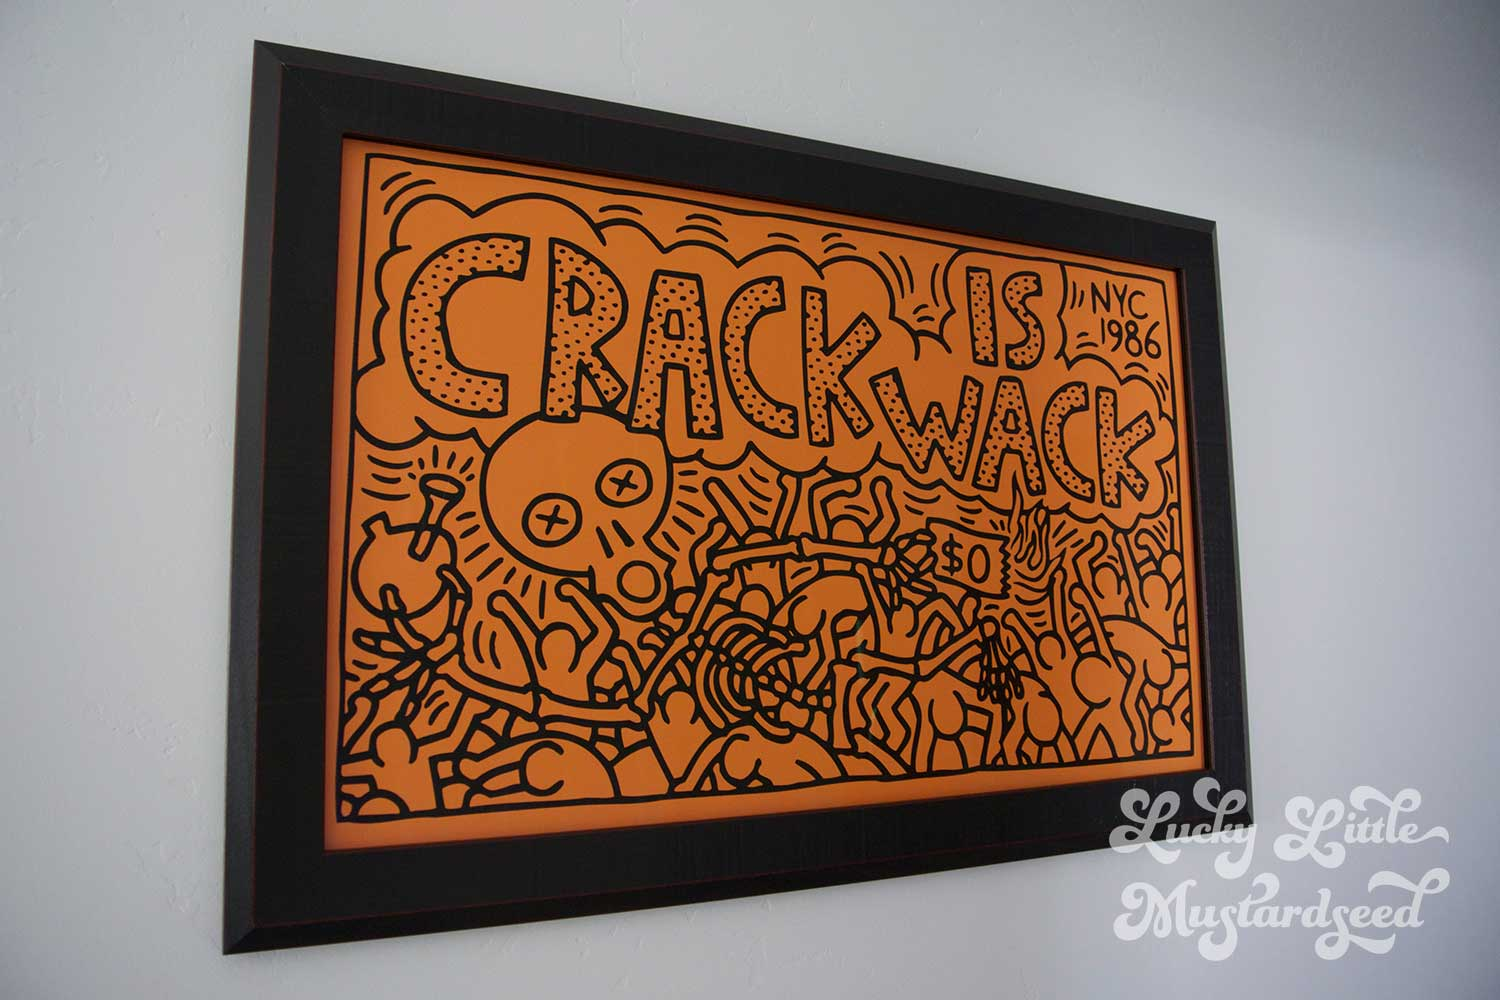 Crack is wack lucky little mustardseed for Crack is wack keith haring mural